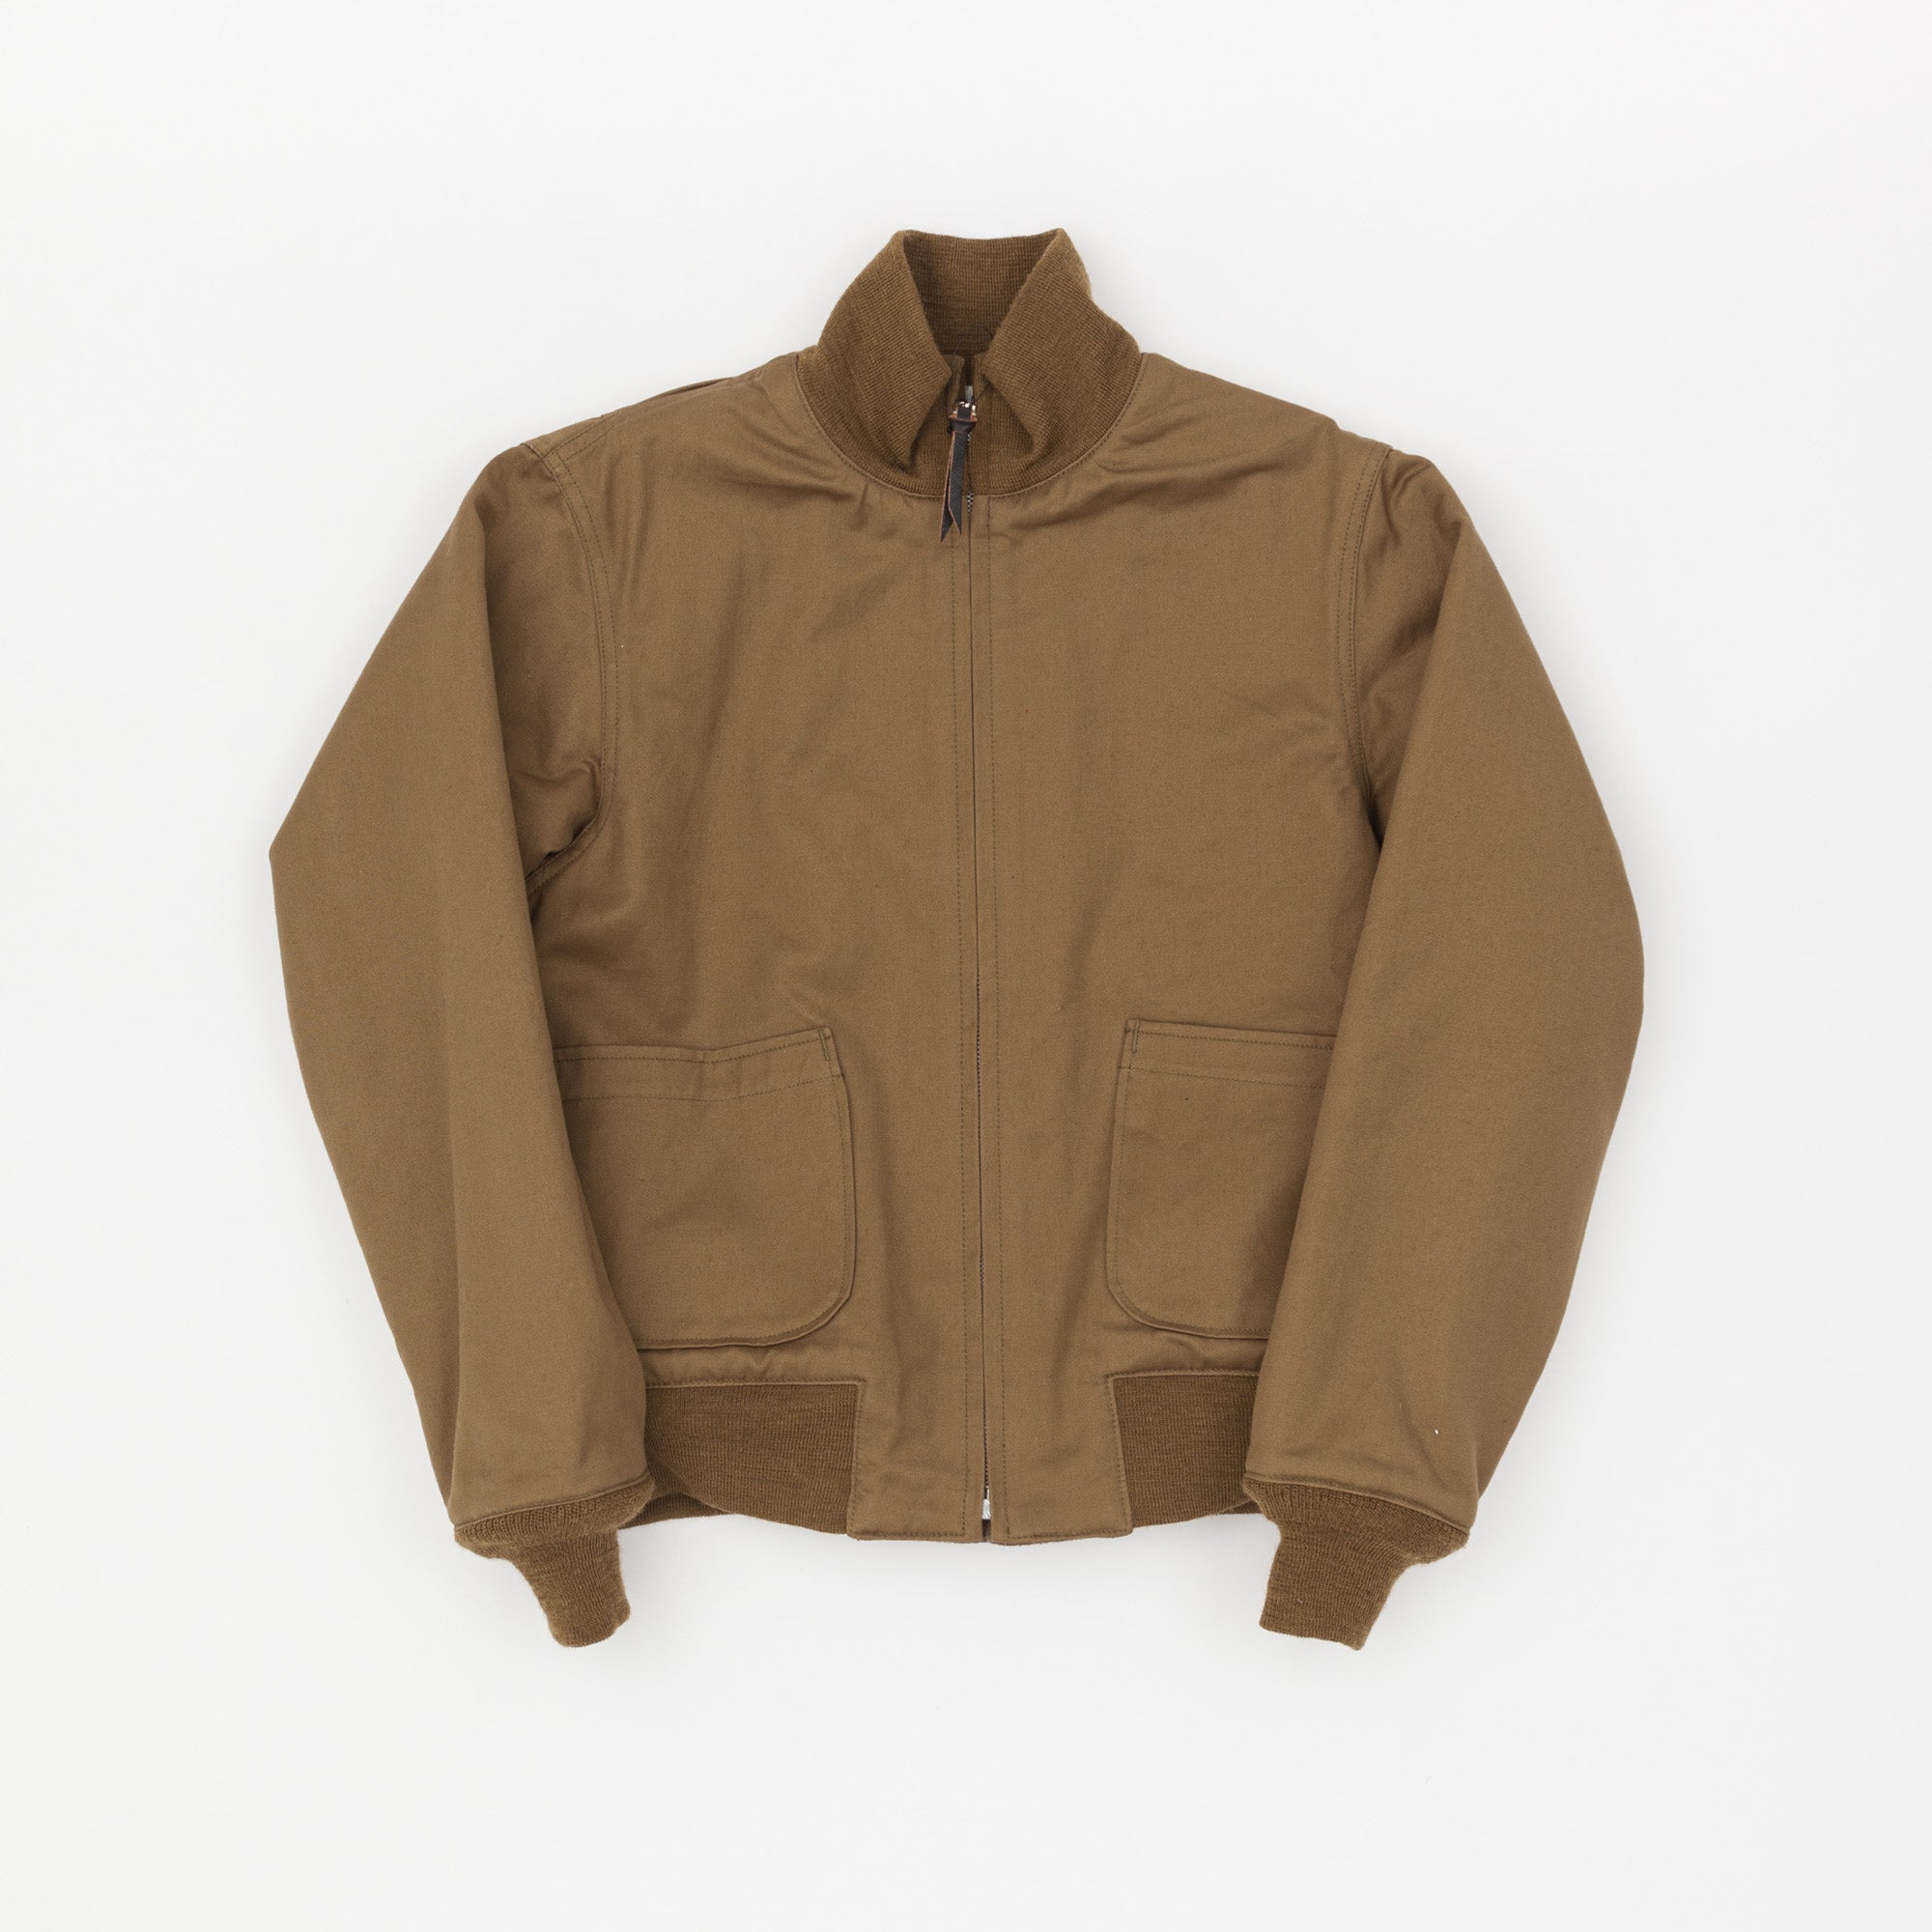 The Real McCoy's Tanker Jacket